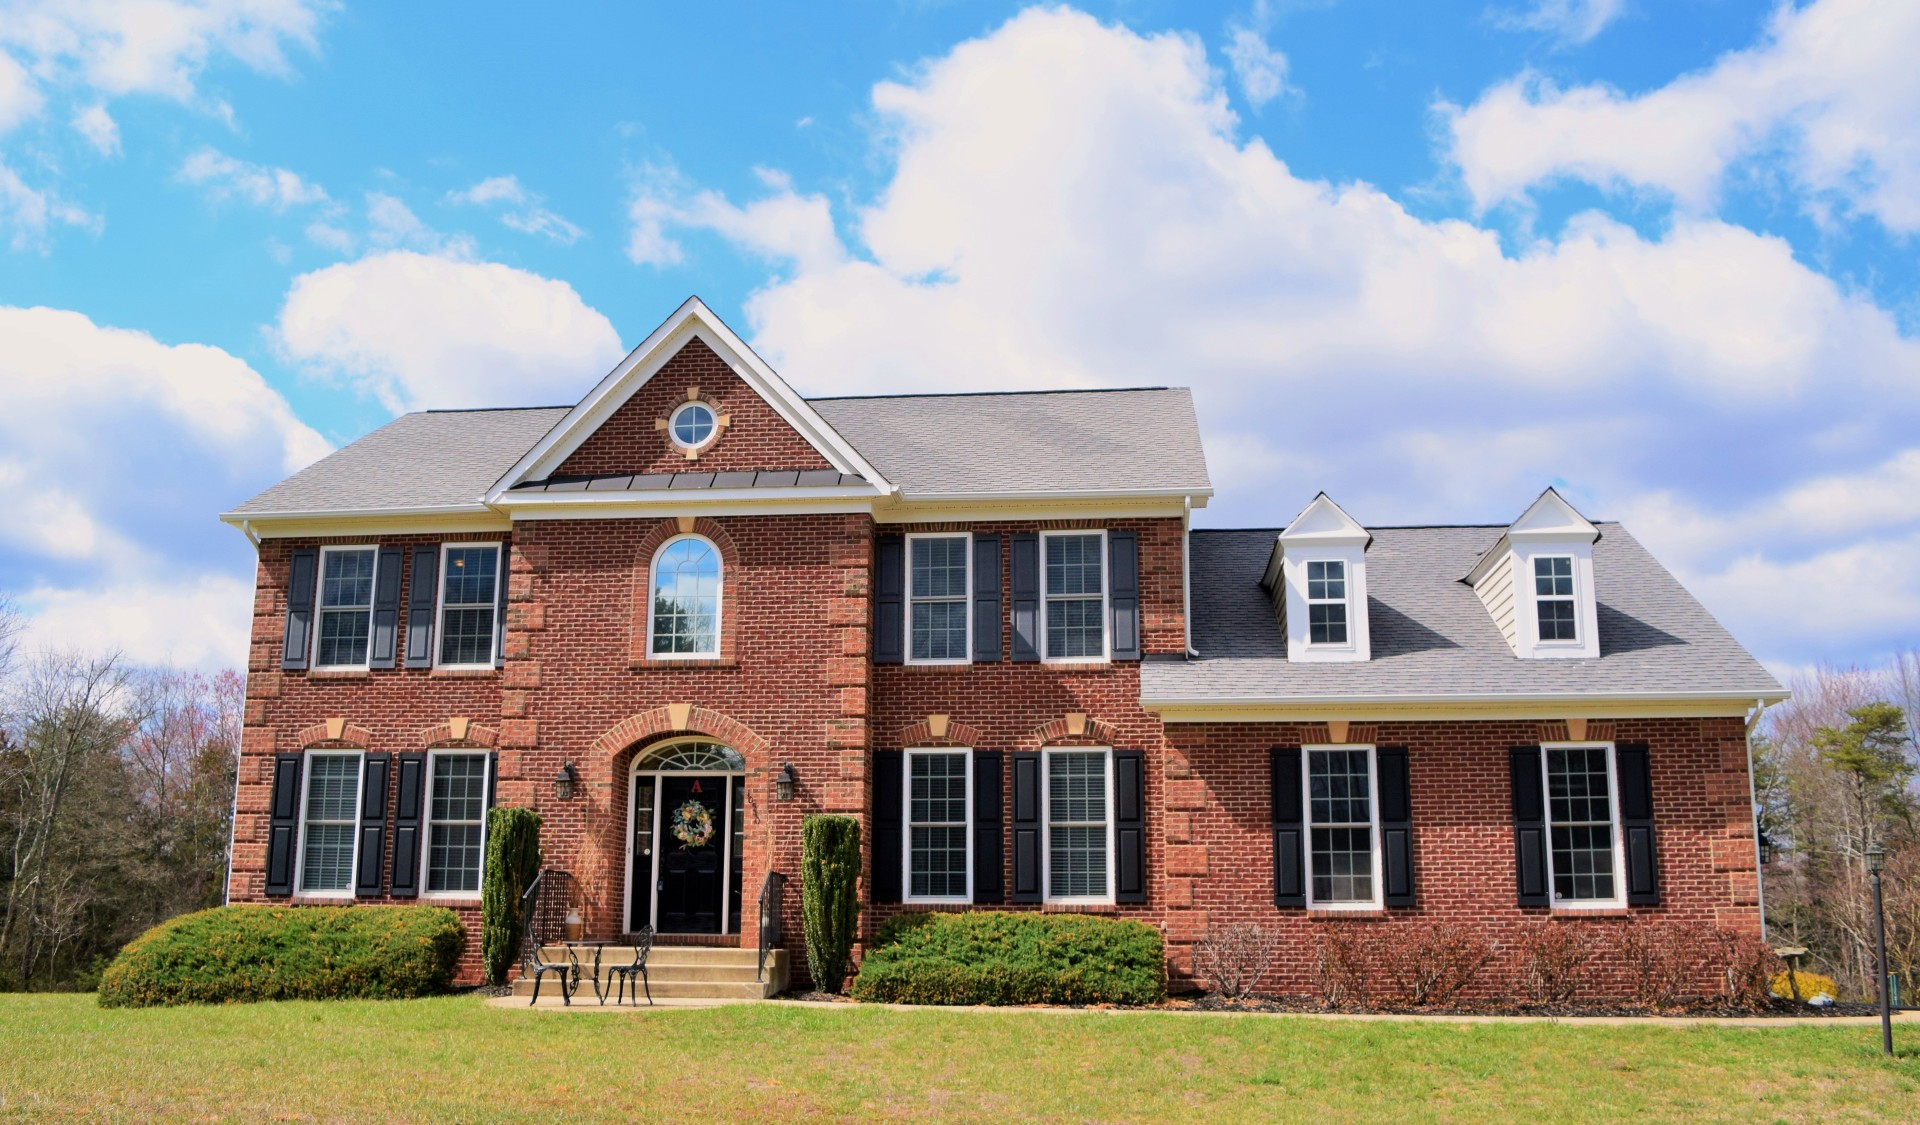 Sold! 10476 Shortcut Road, Catlett, VA 20119